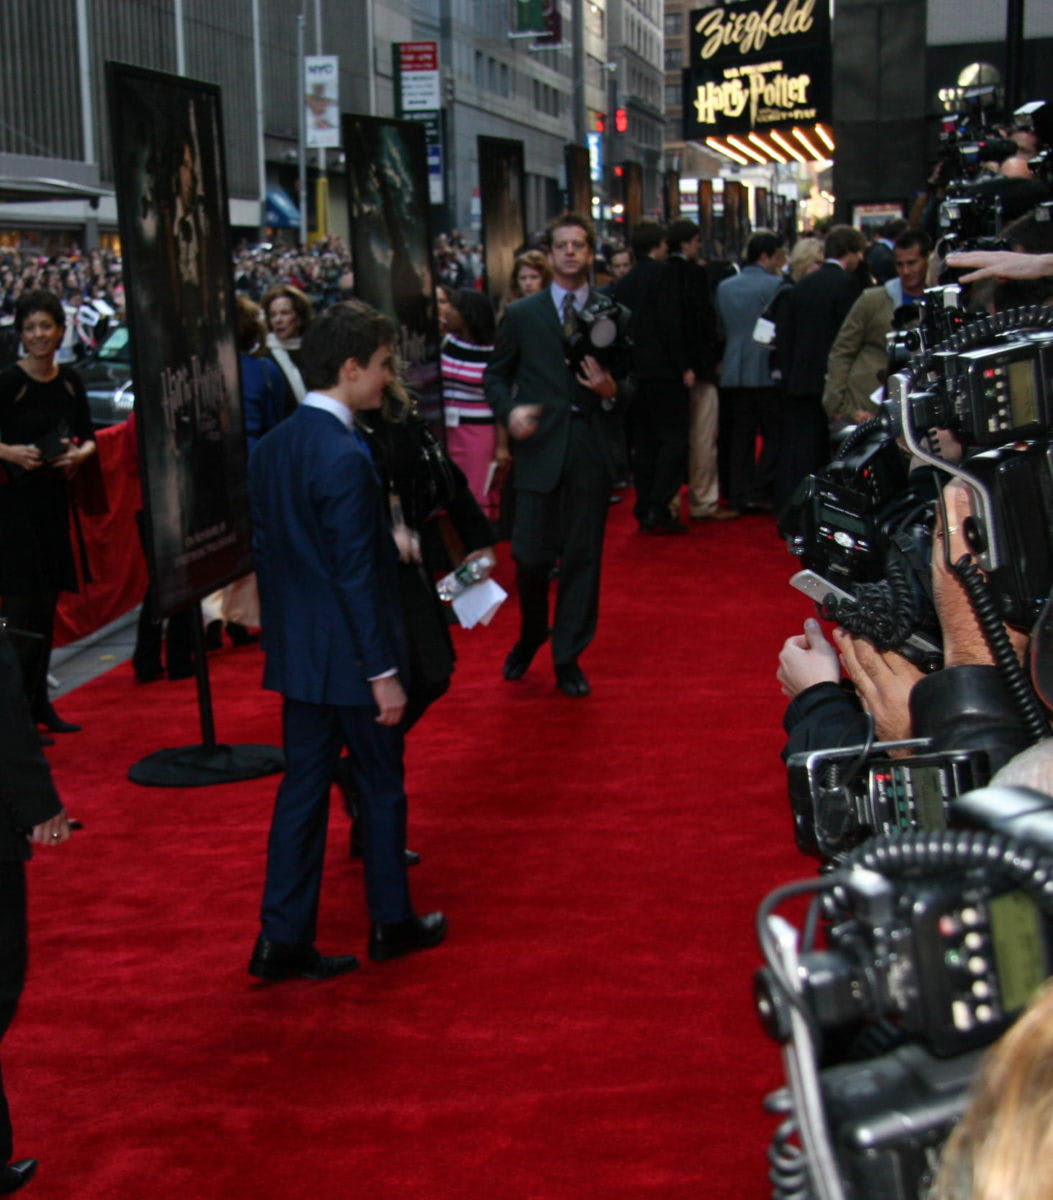 Daniel Radcliffe walks the red carpet at the New York City 'Goblet of Fire' premiere